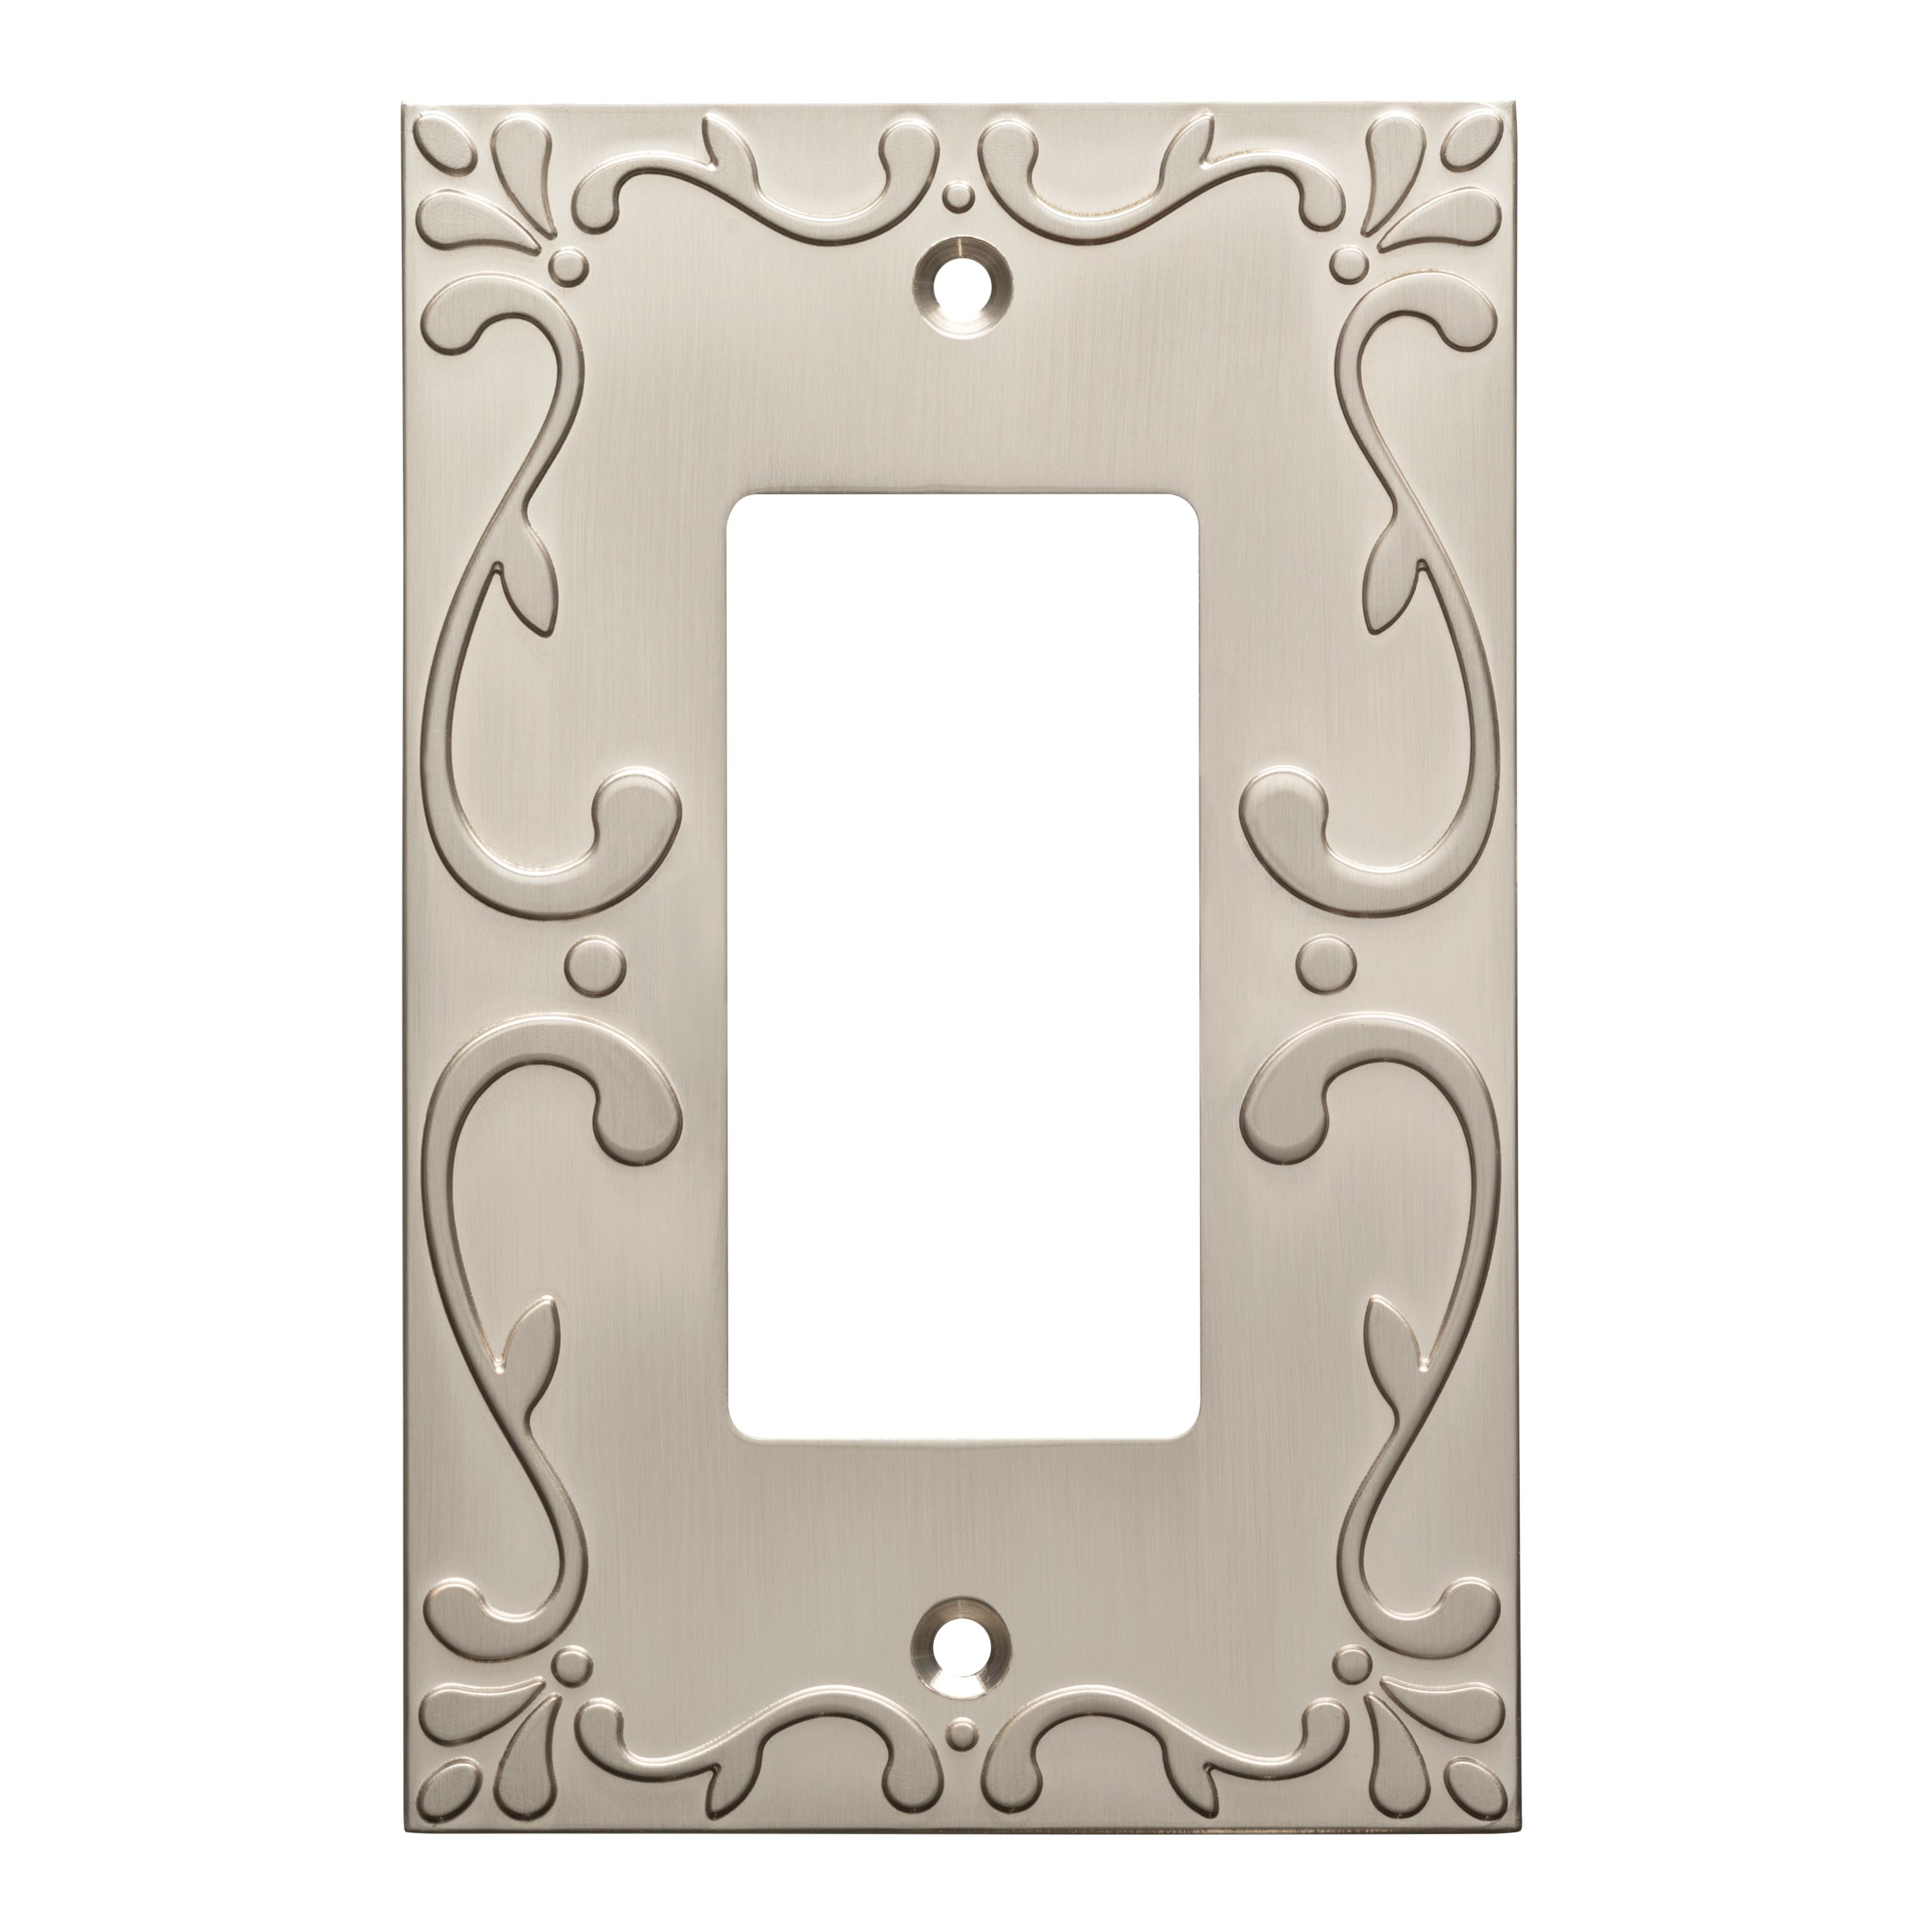 Franklin Brass Classic Lace Single Decorator Wall Plate in Satin Nickel